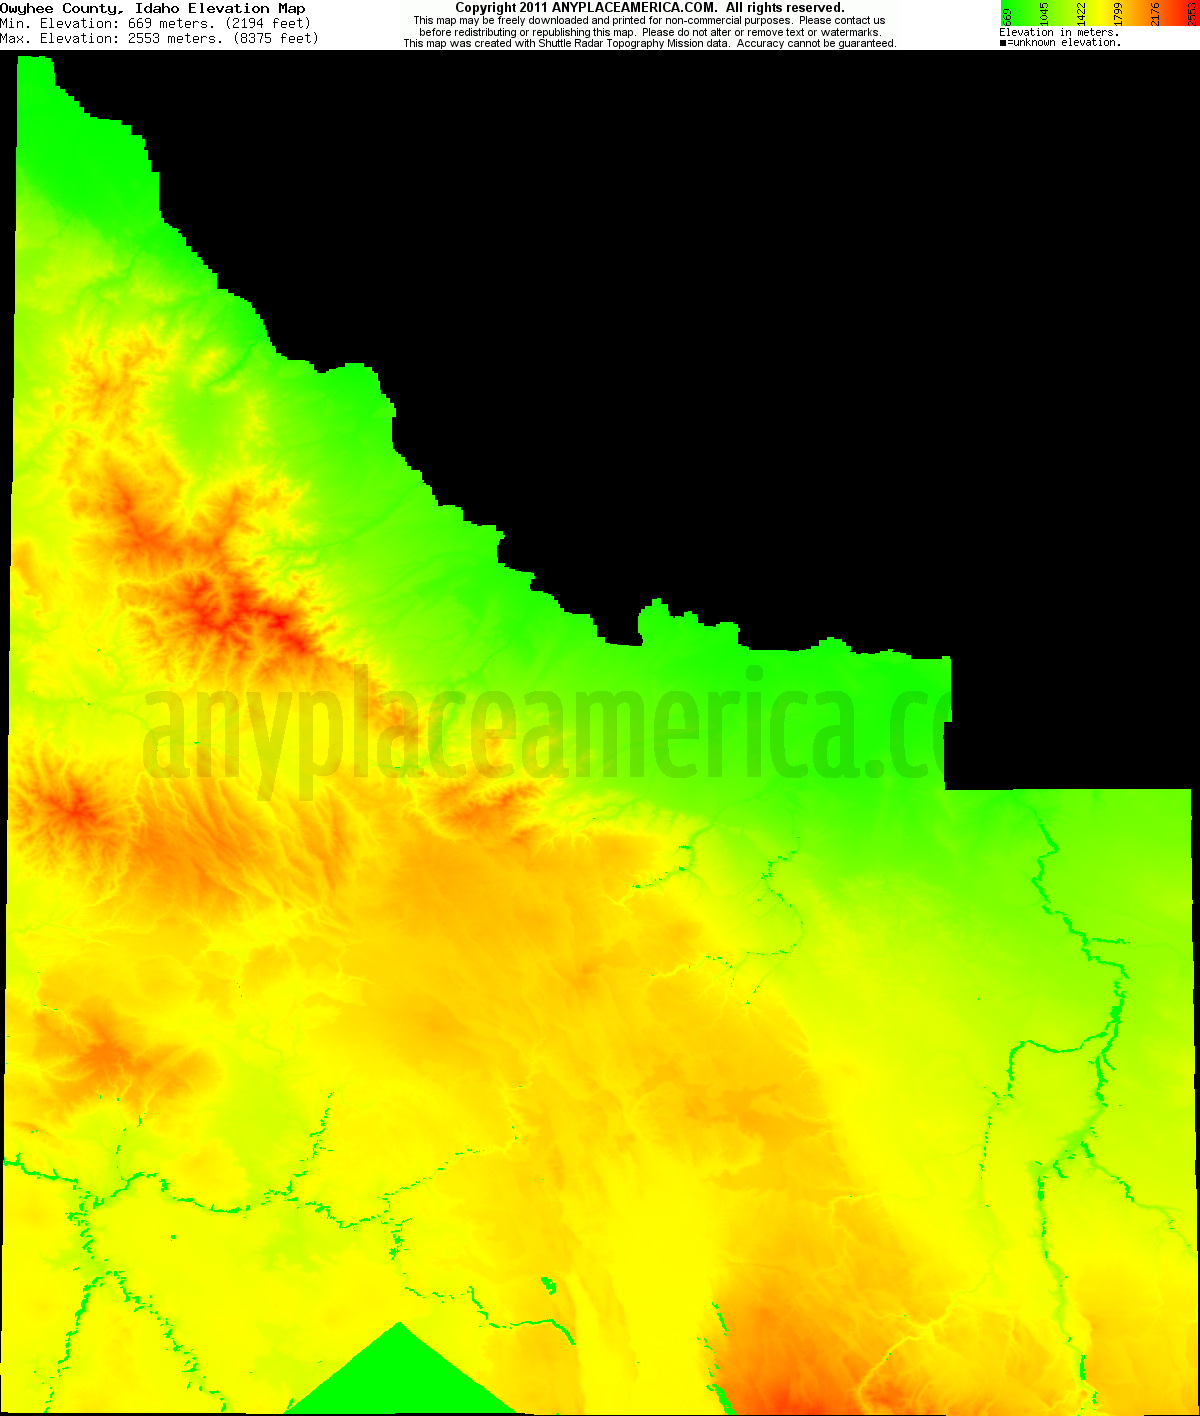 Owyhee, Idaho elevation map